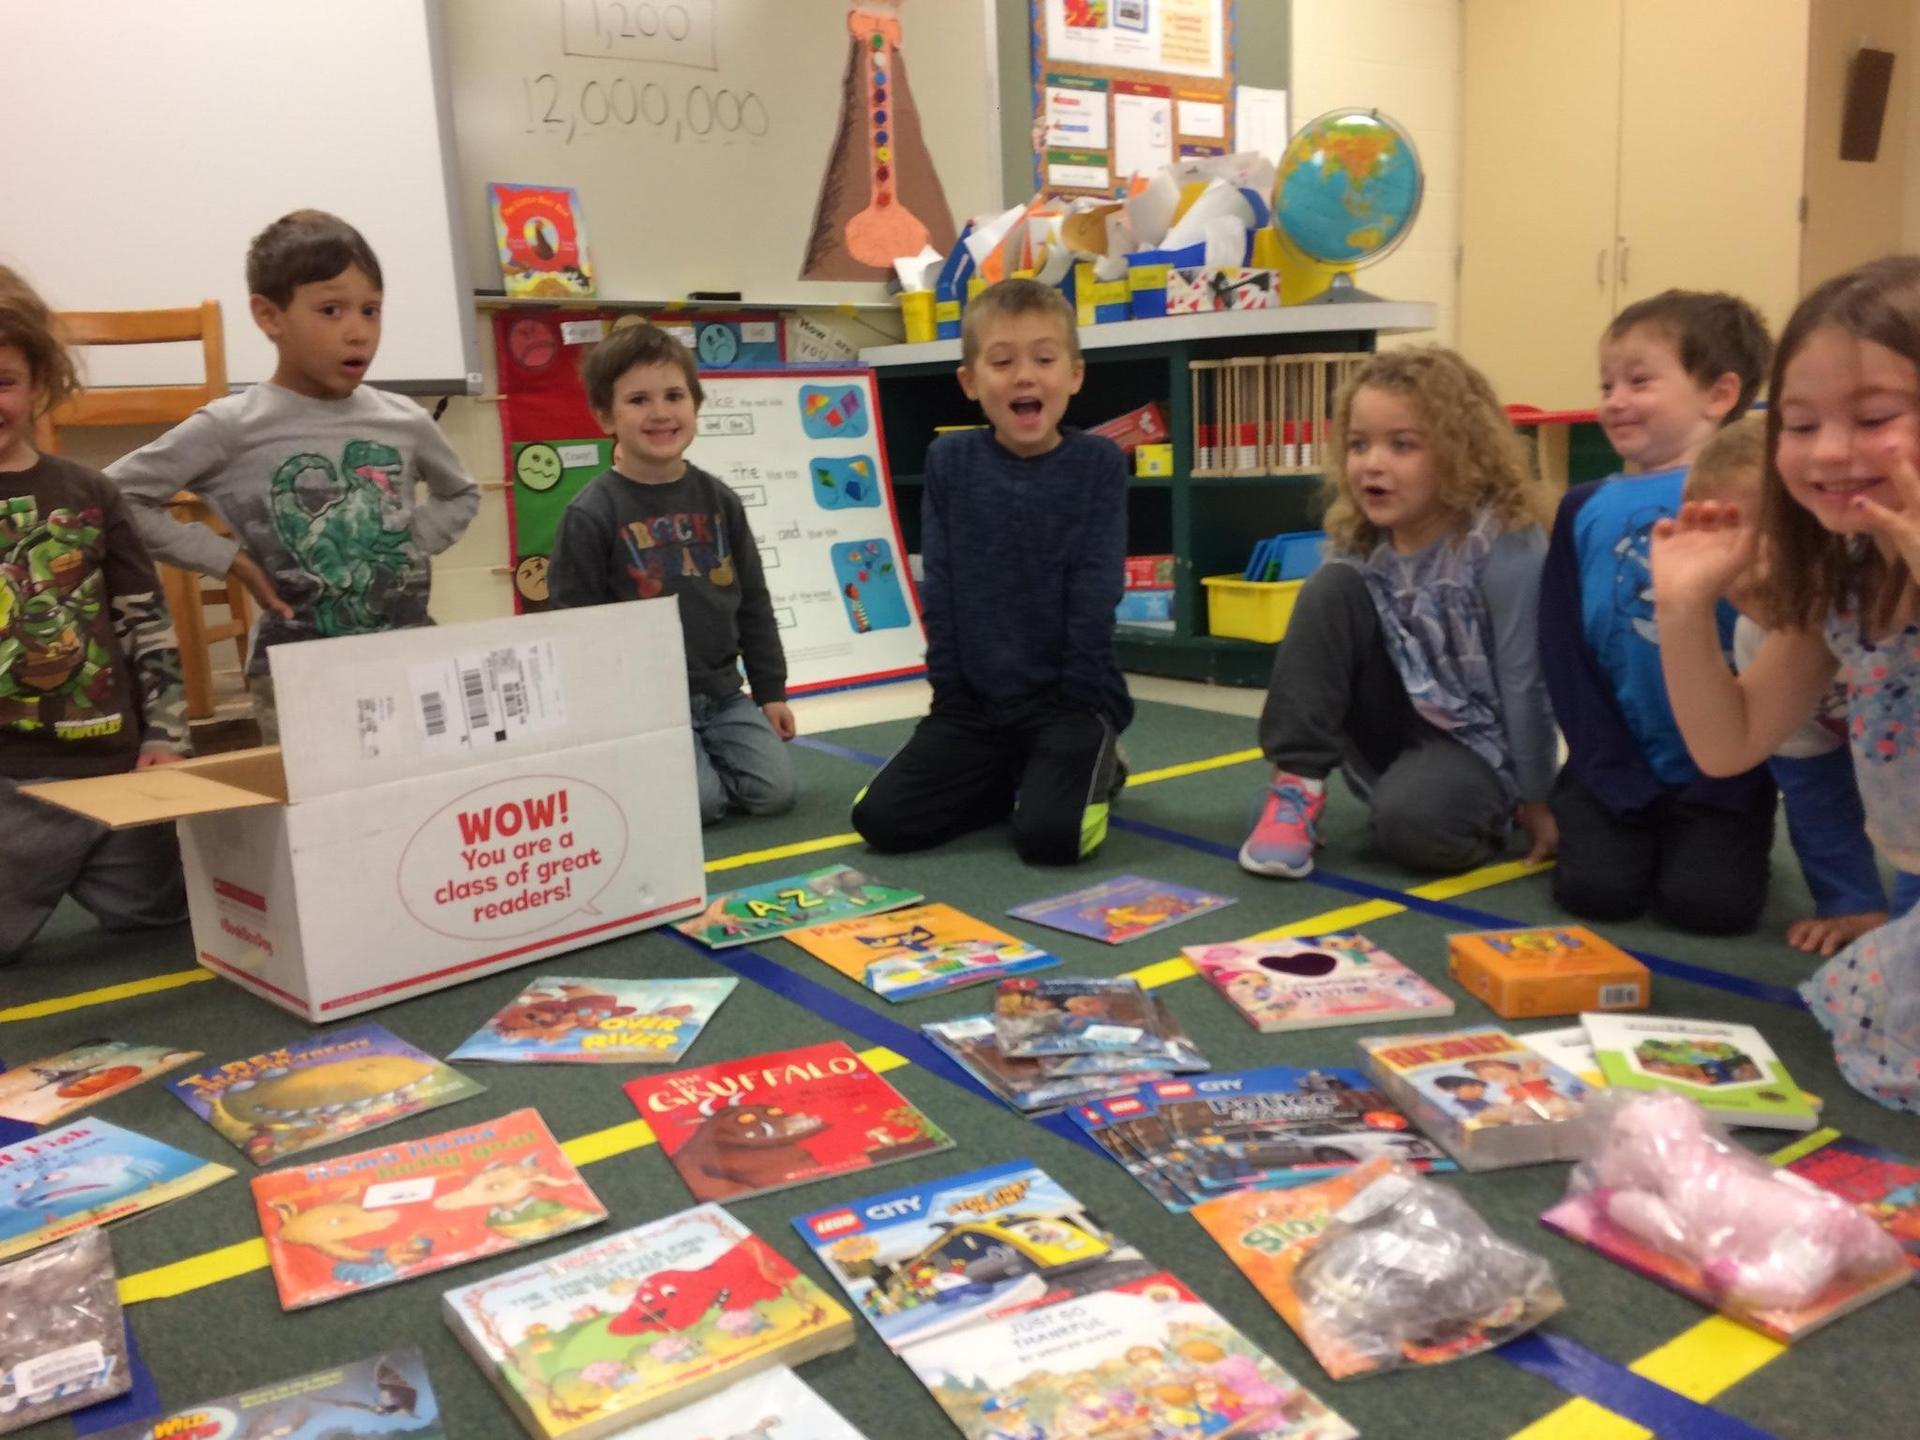 Young students excited about new books